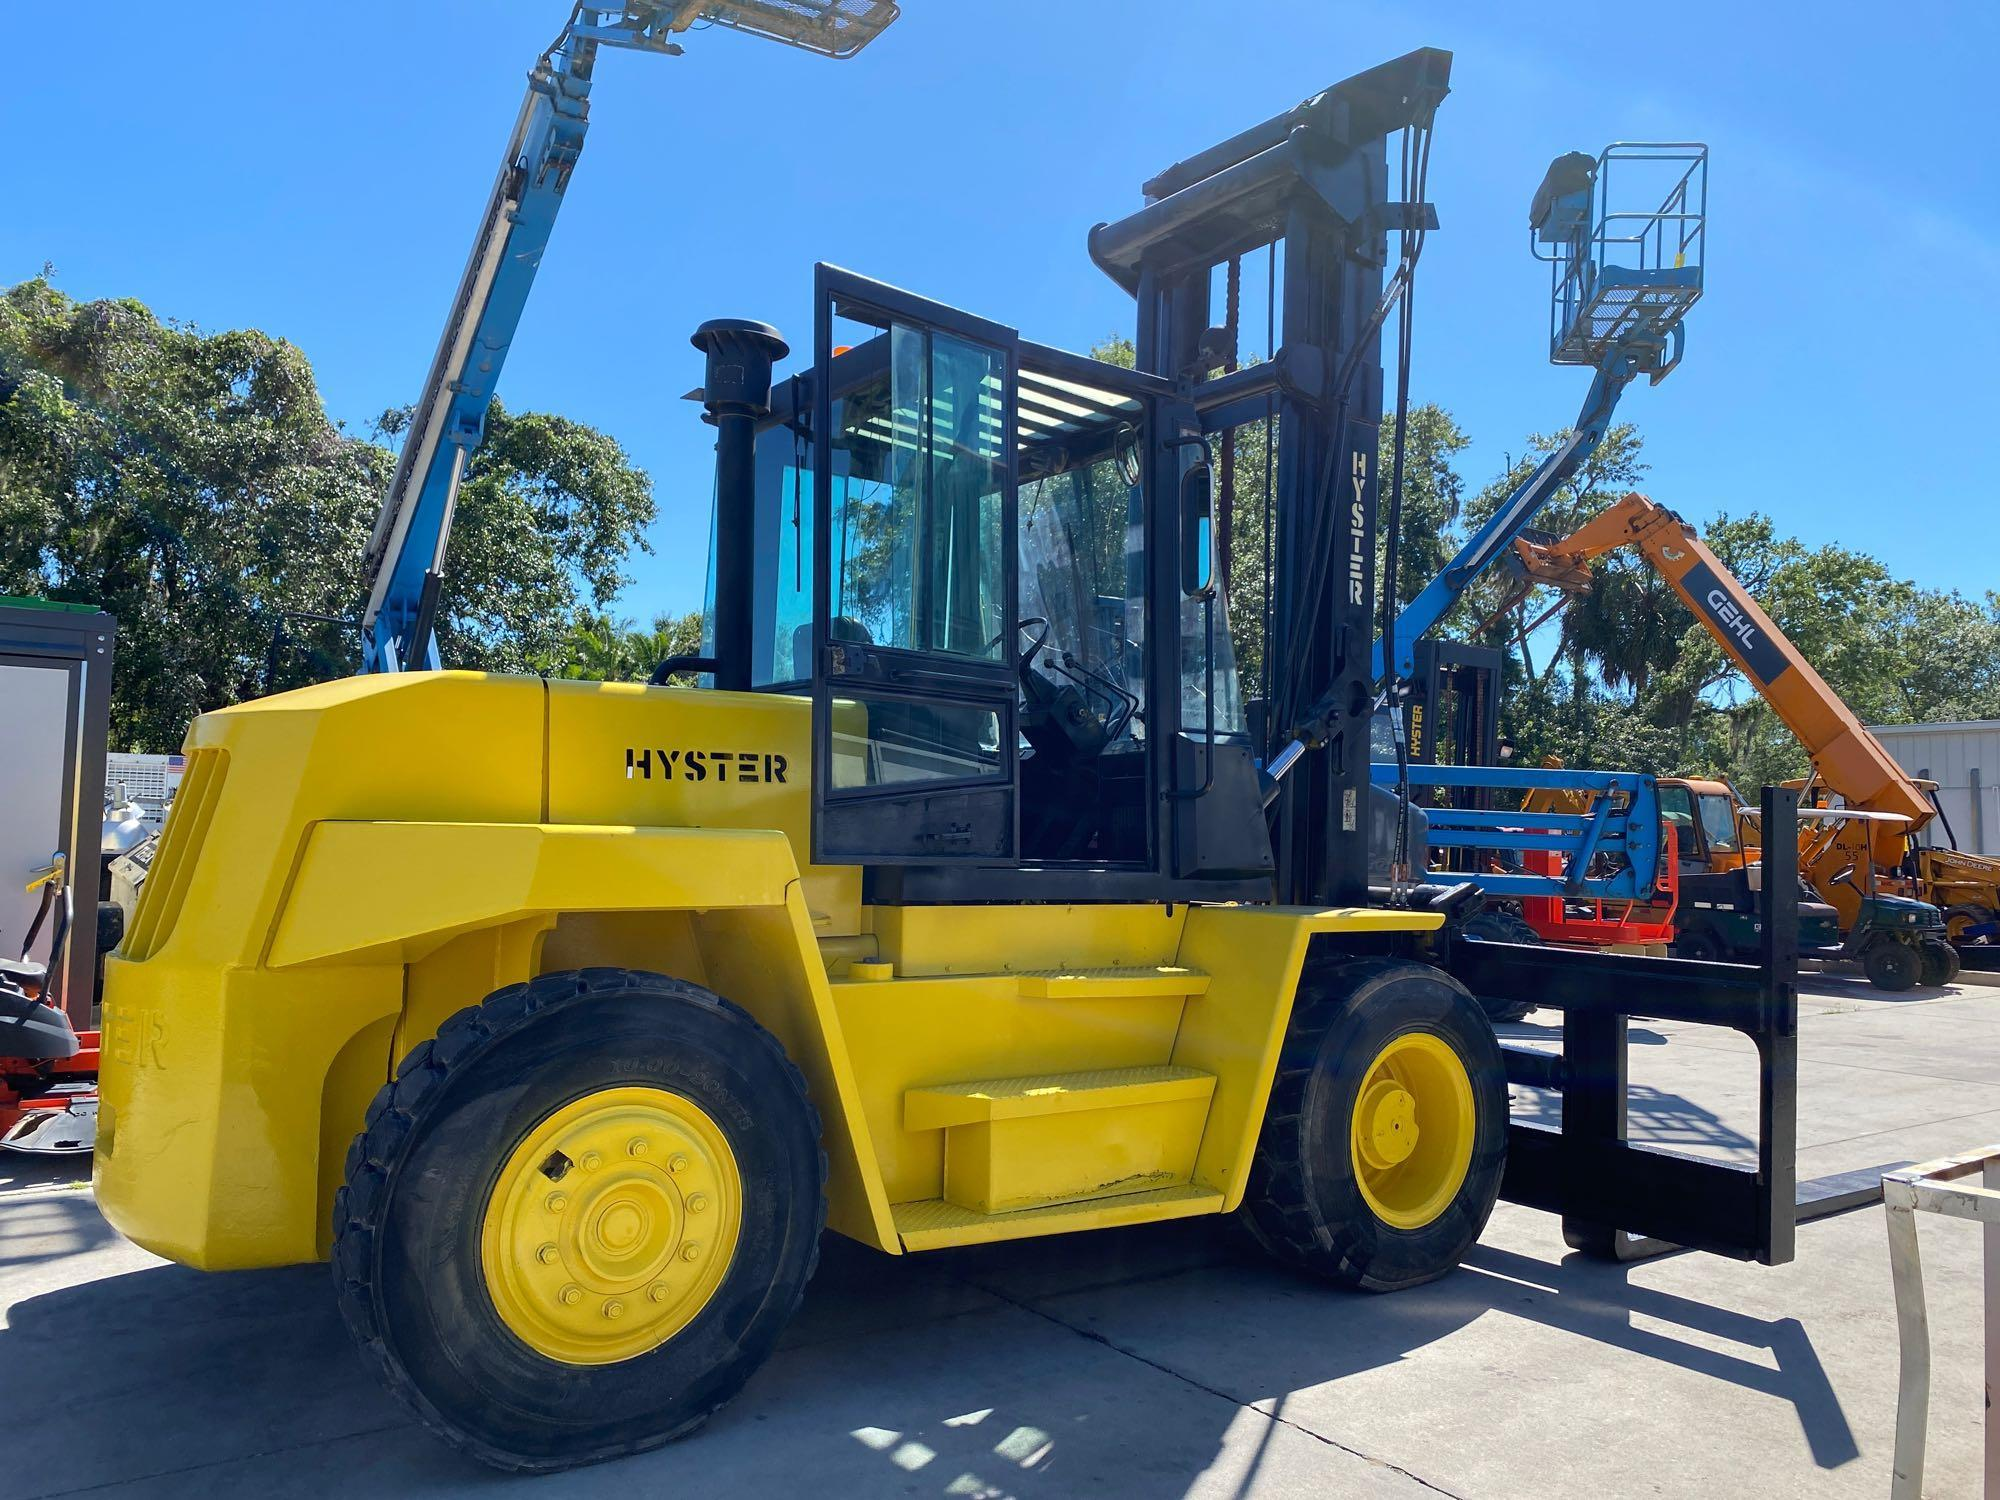 """HYSTER DIESEL FORKLIFT MODEL H190XL2, APPROX. 19,000 LB CAPACITY, 212.6"""" HEIGHT CAPACITY, RUNS AND O - Image 5 of 12"""